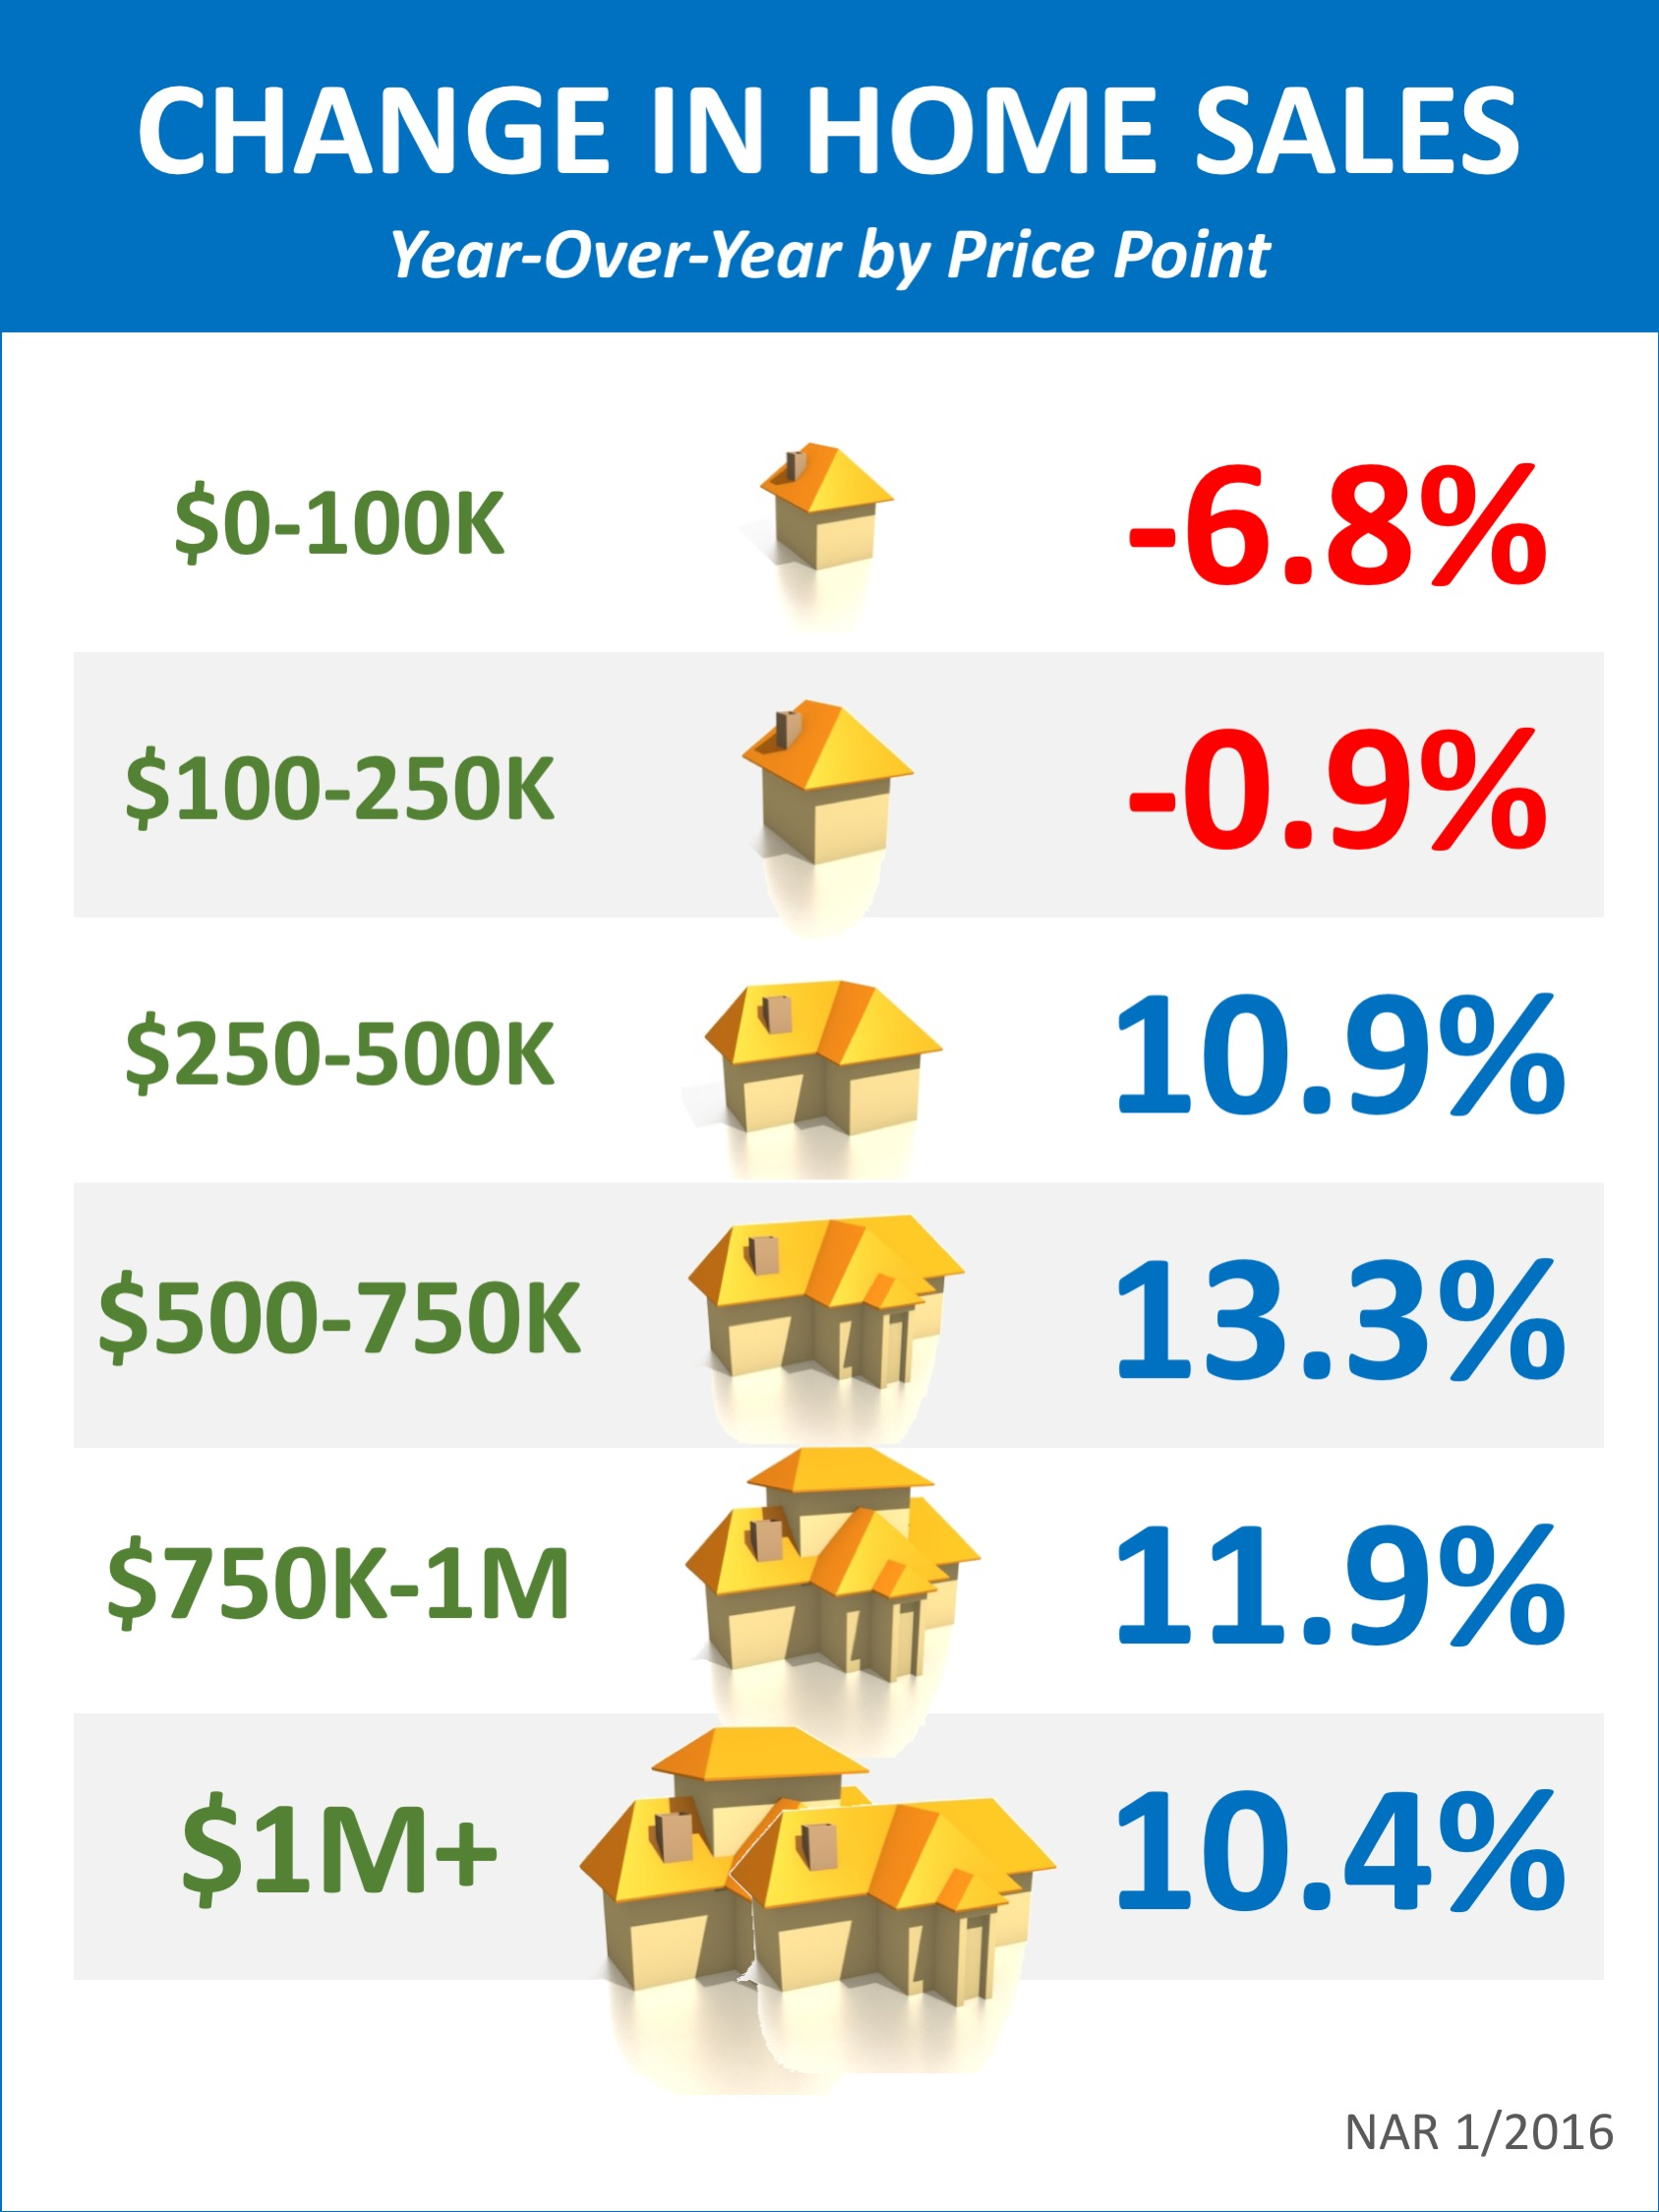 Change in Home Sales by Price Range [INFOGRAPHIC]   Simplifying The Market